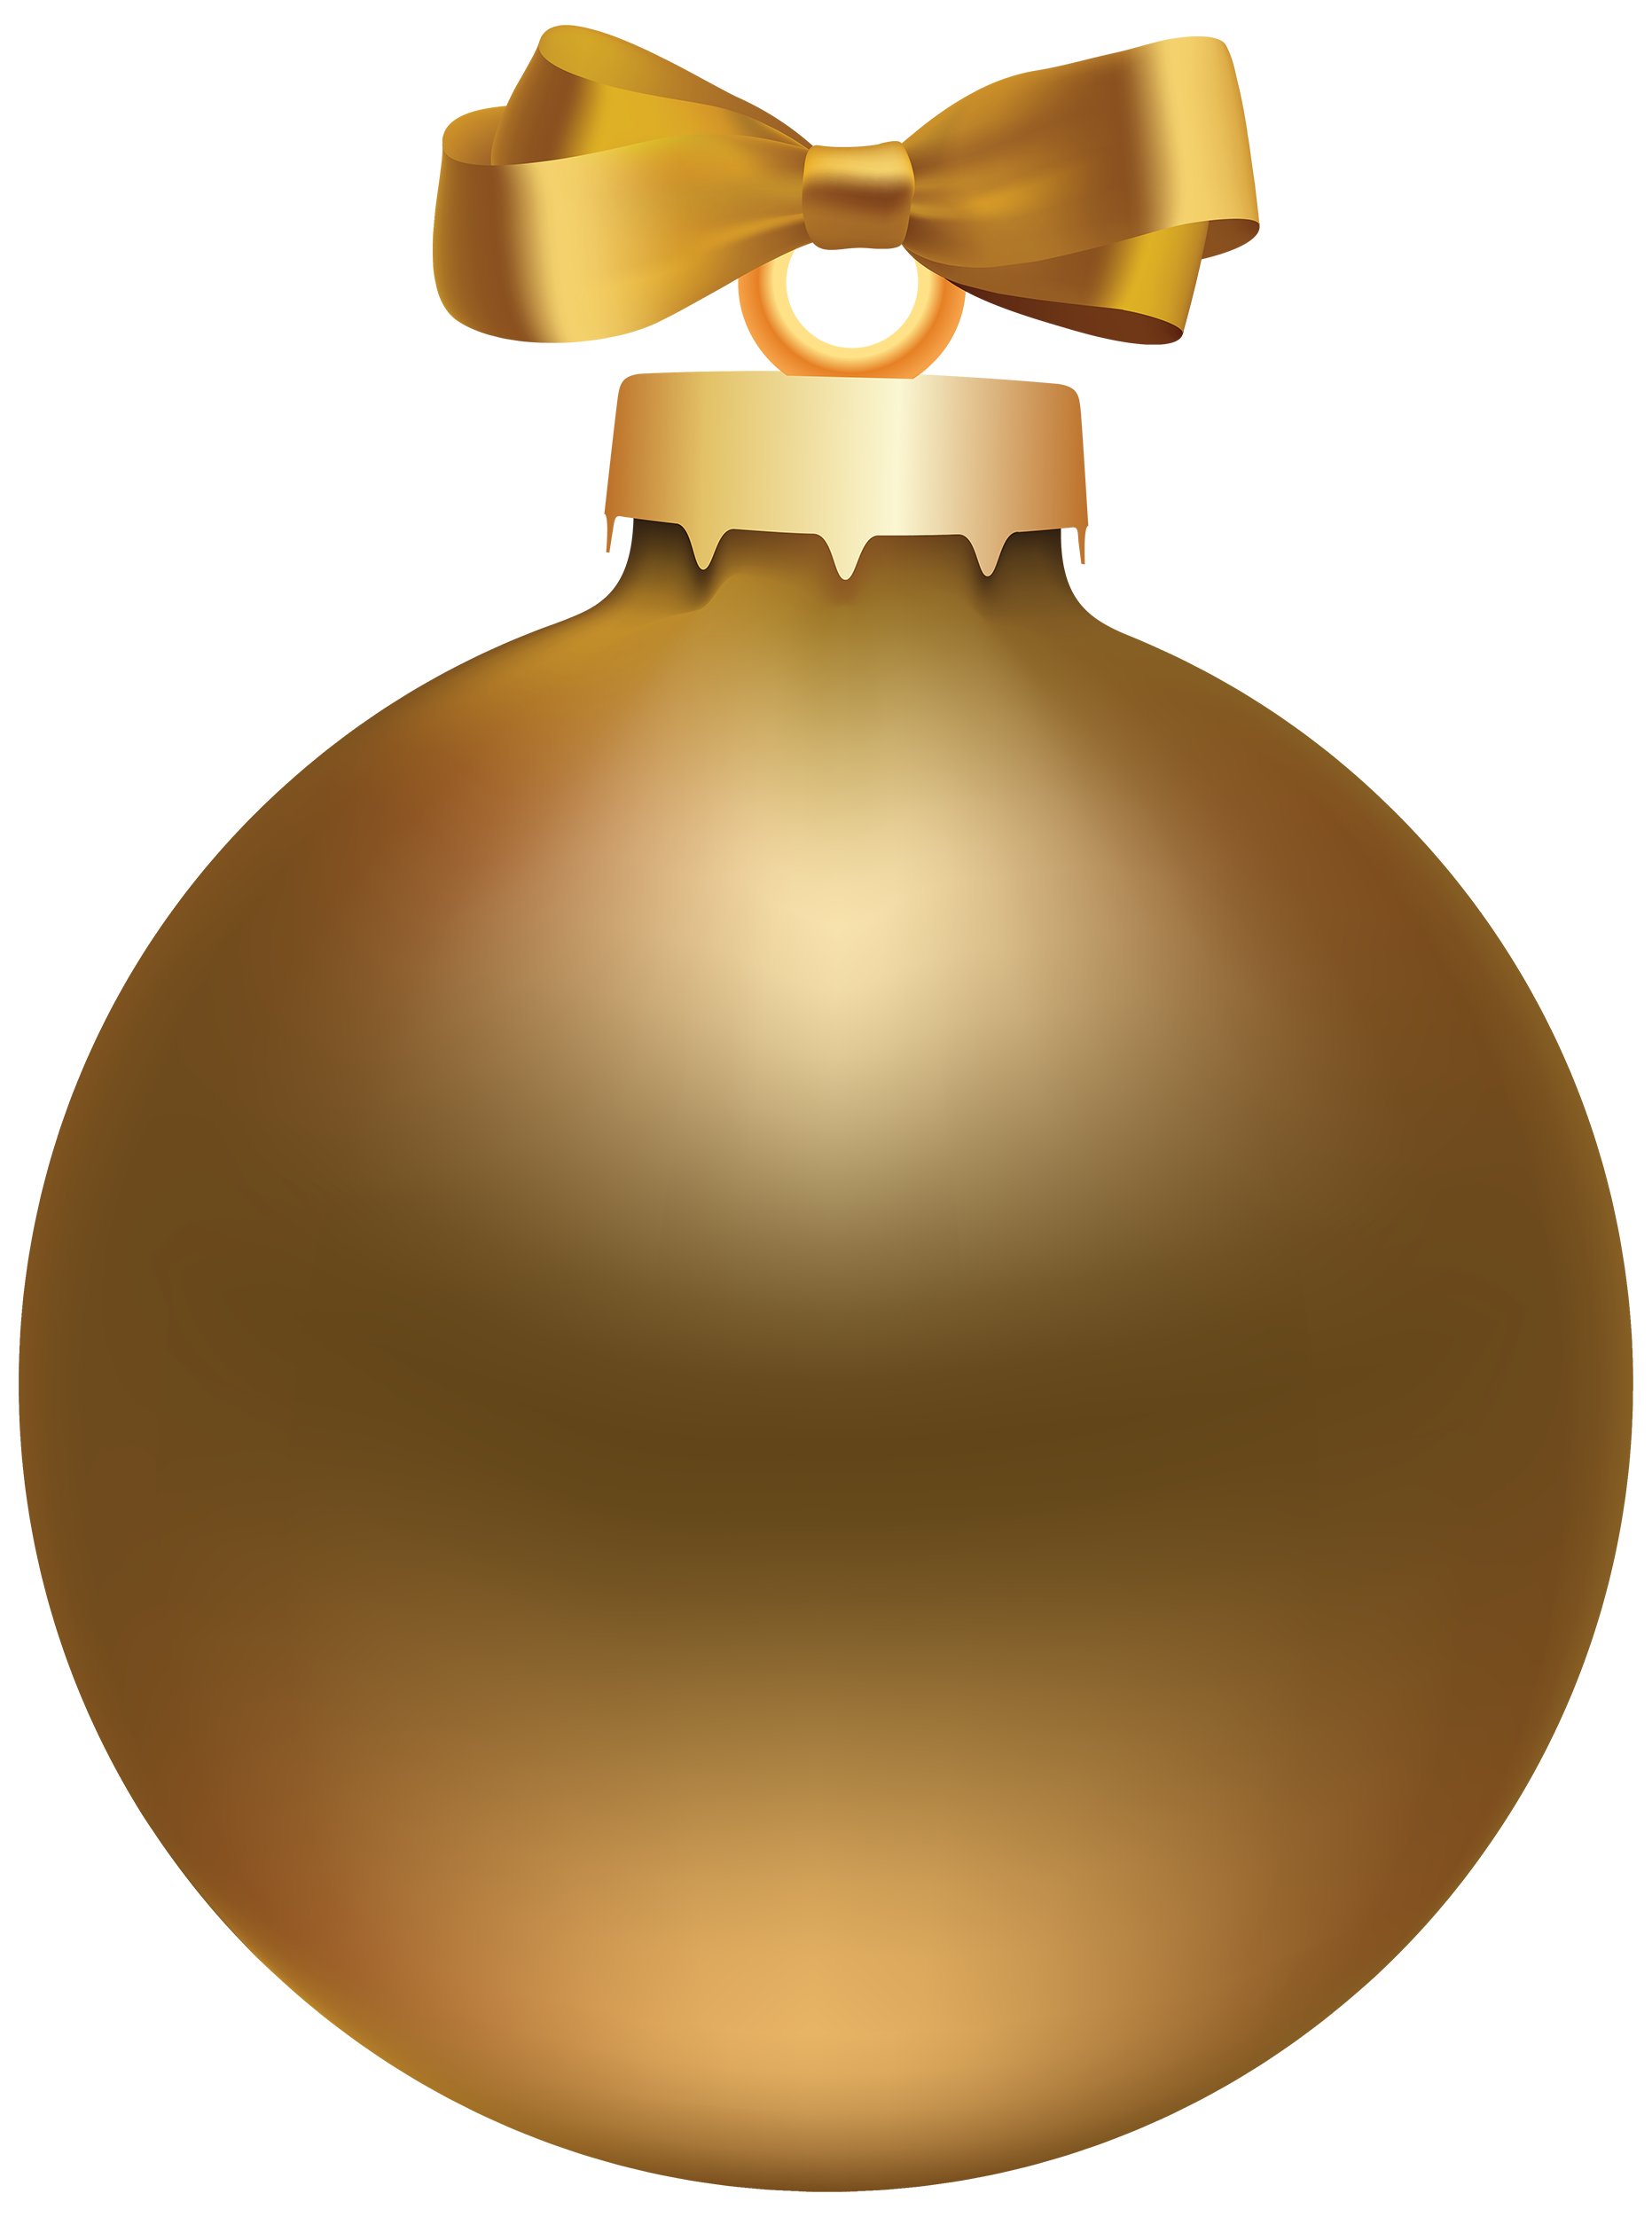 Gold christmas balls clipart image library library Golden Style Christmas Ball PNG Clipart - Best WEB Clipart image library library